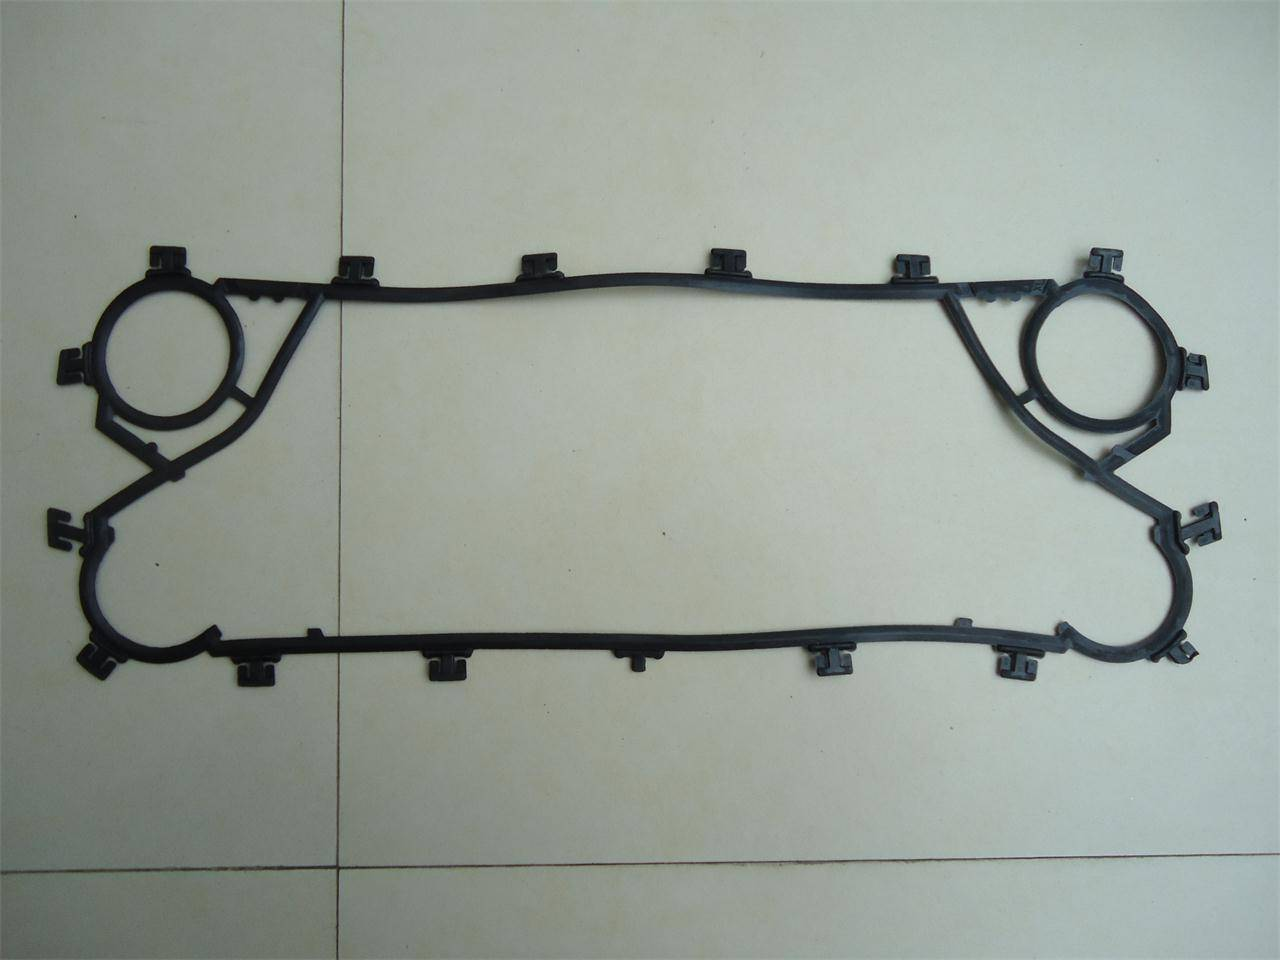 Funke FP10 gasket for plate heat exchanger